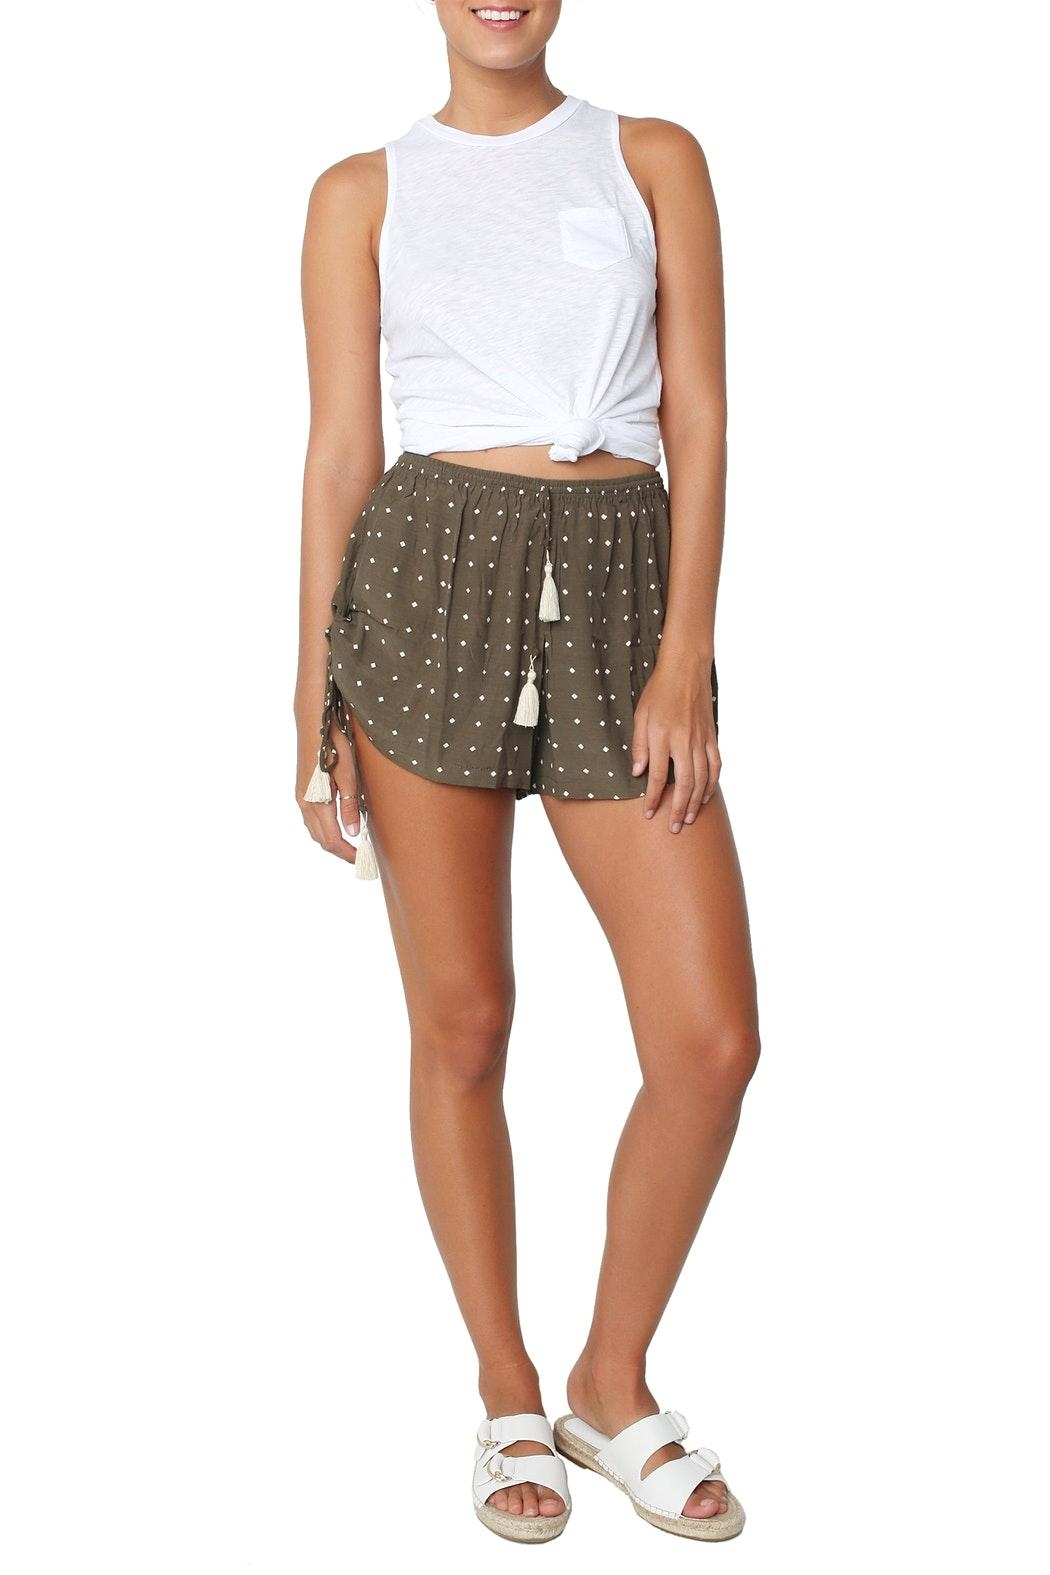 Faithfull The Brand Gypsy Shorts - Front Full Image